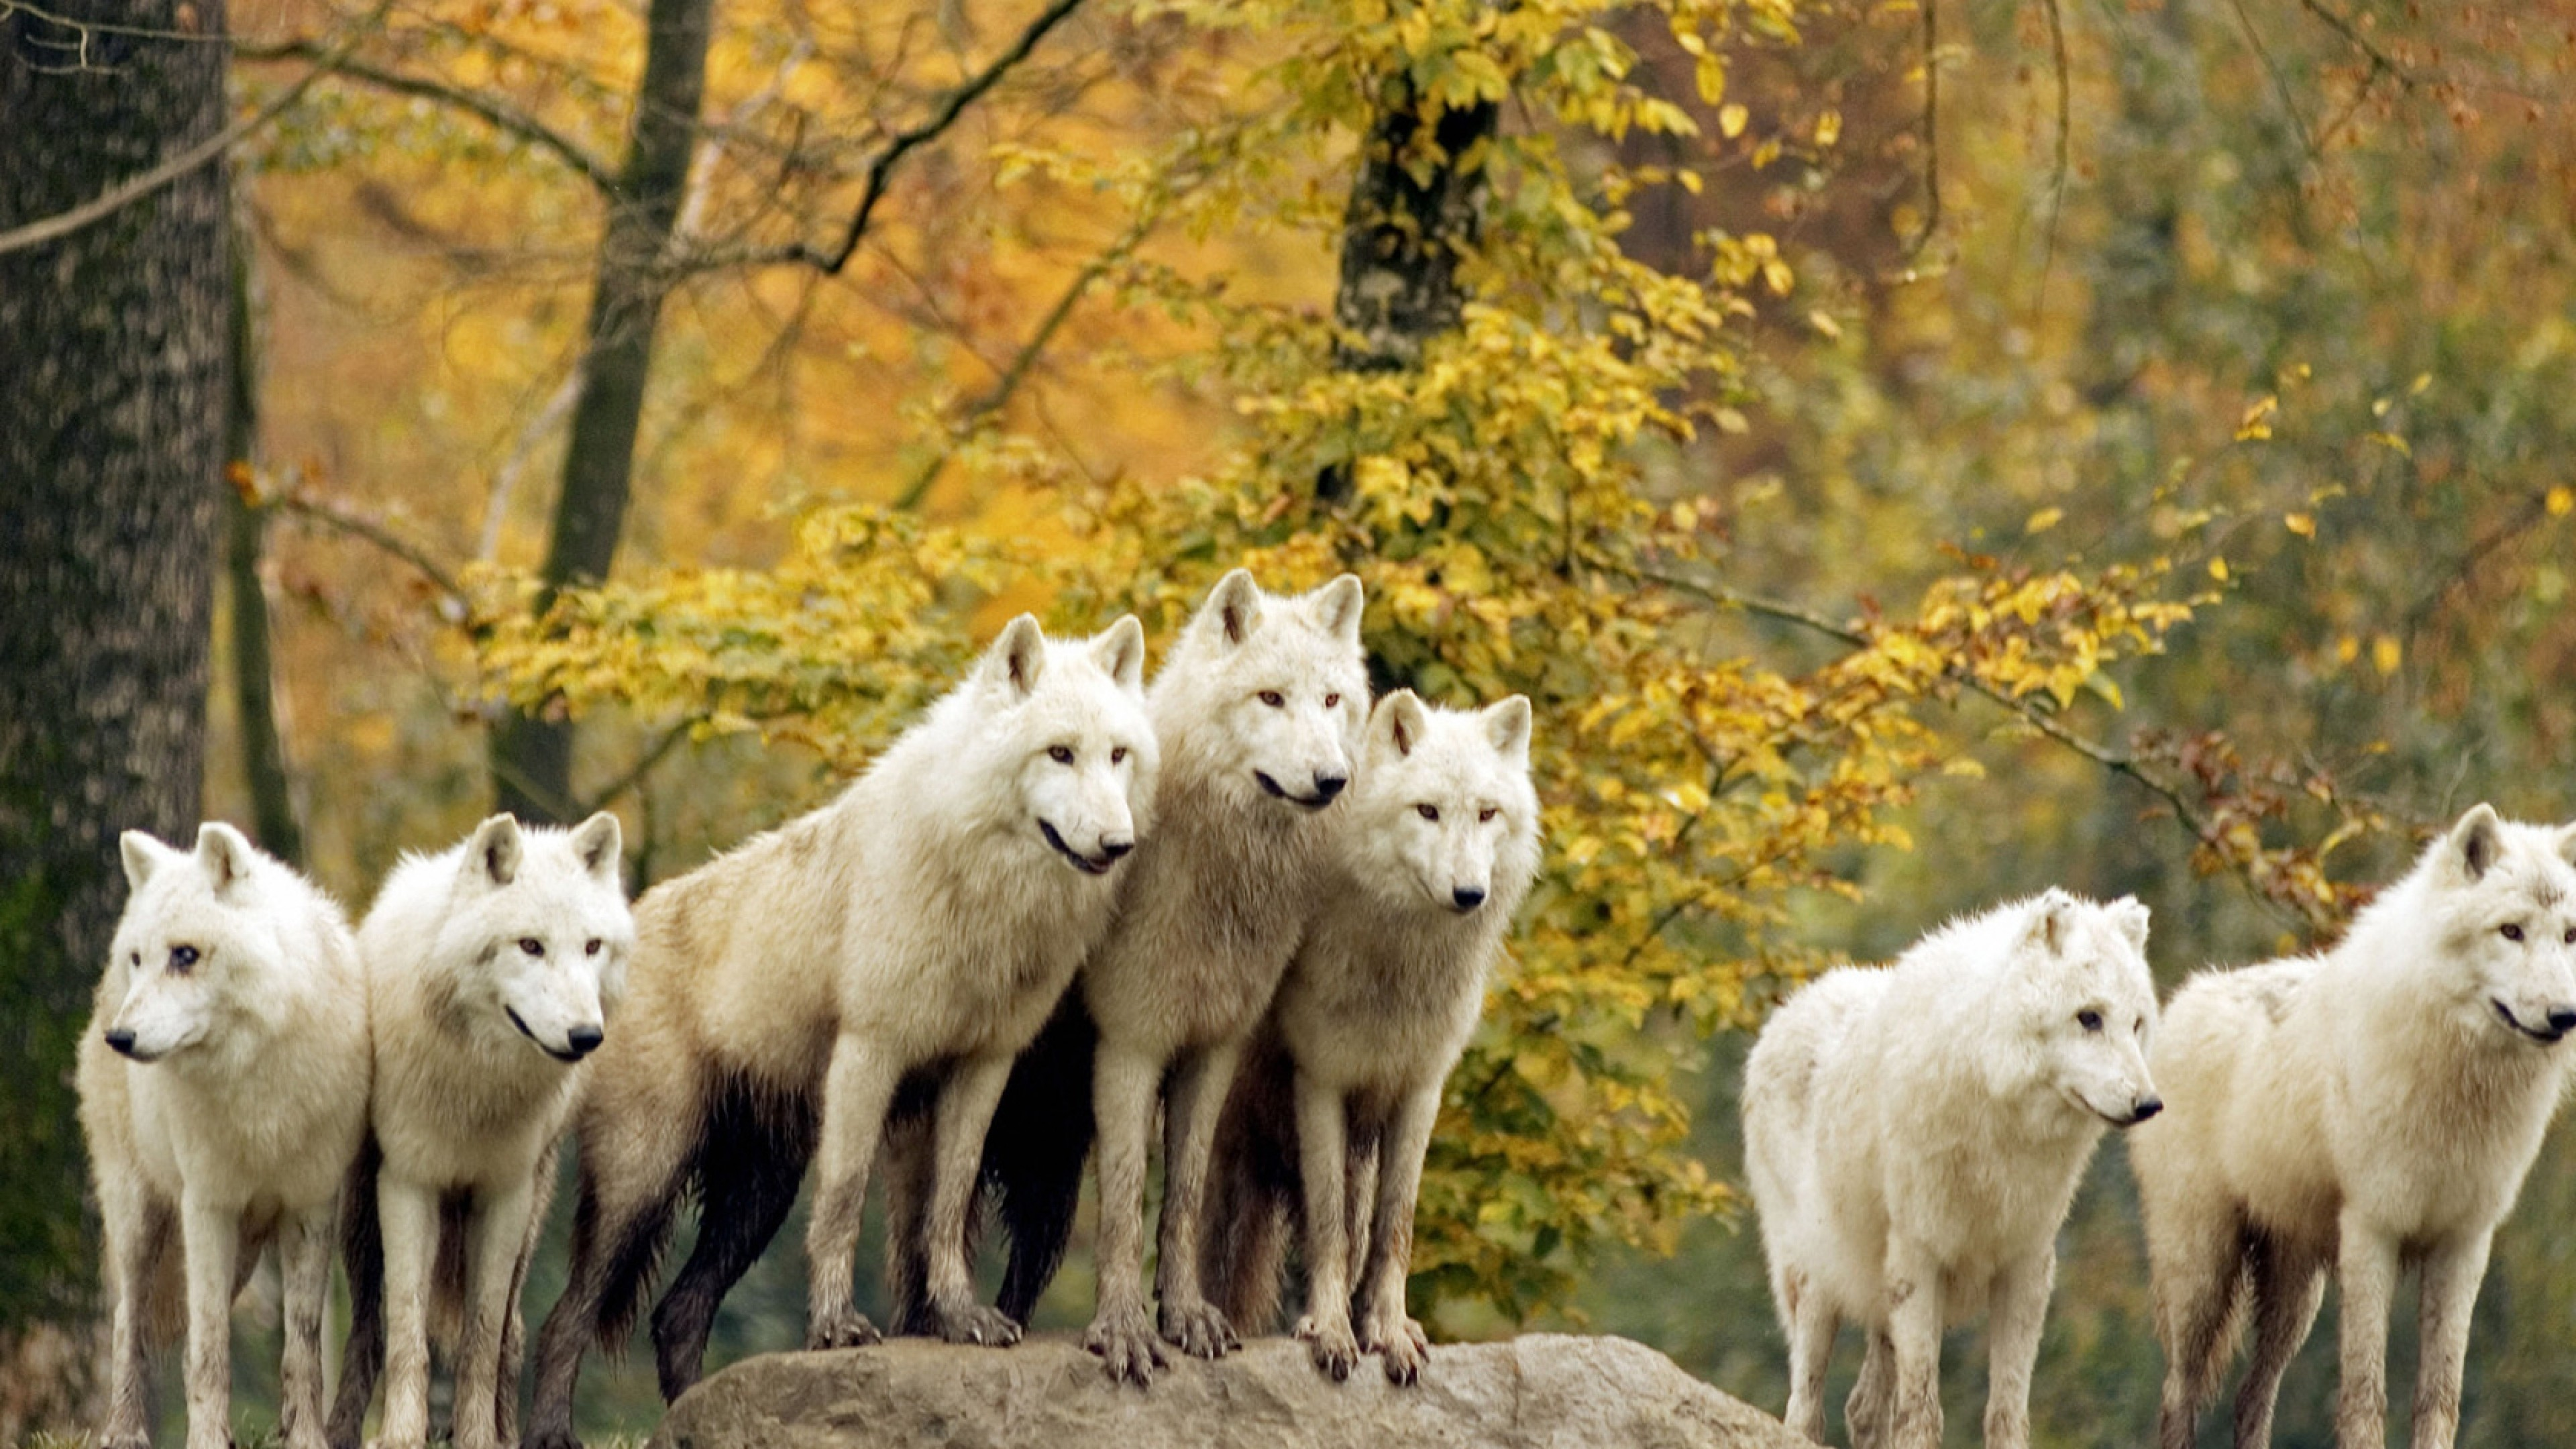 Wolves, Forest, Flock, Grass, Trees, Autumn, Hunting, Family Wallpaper